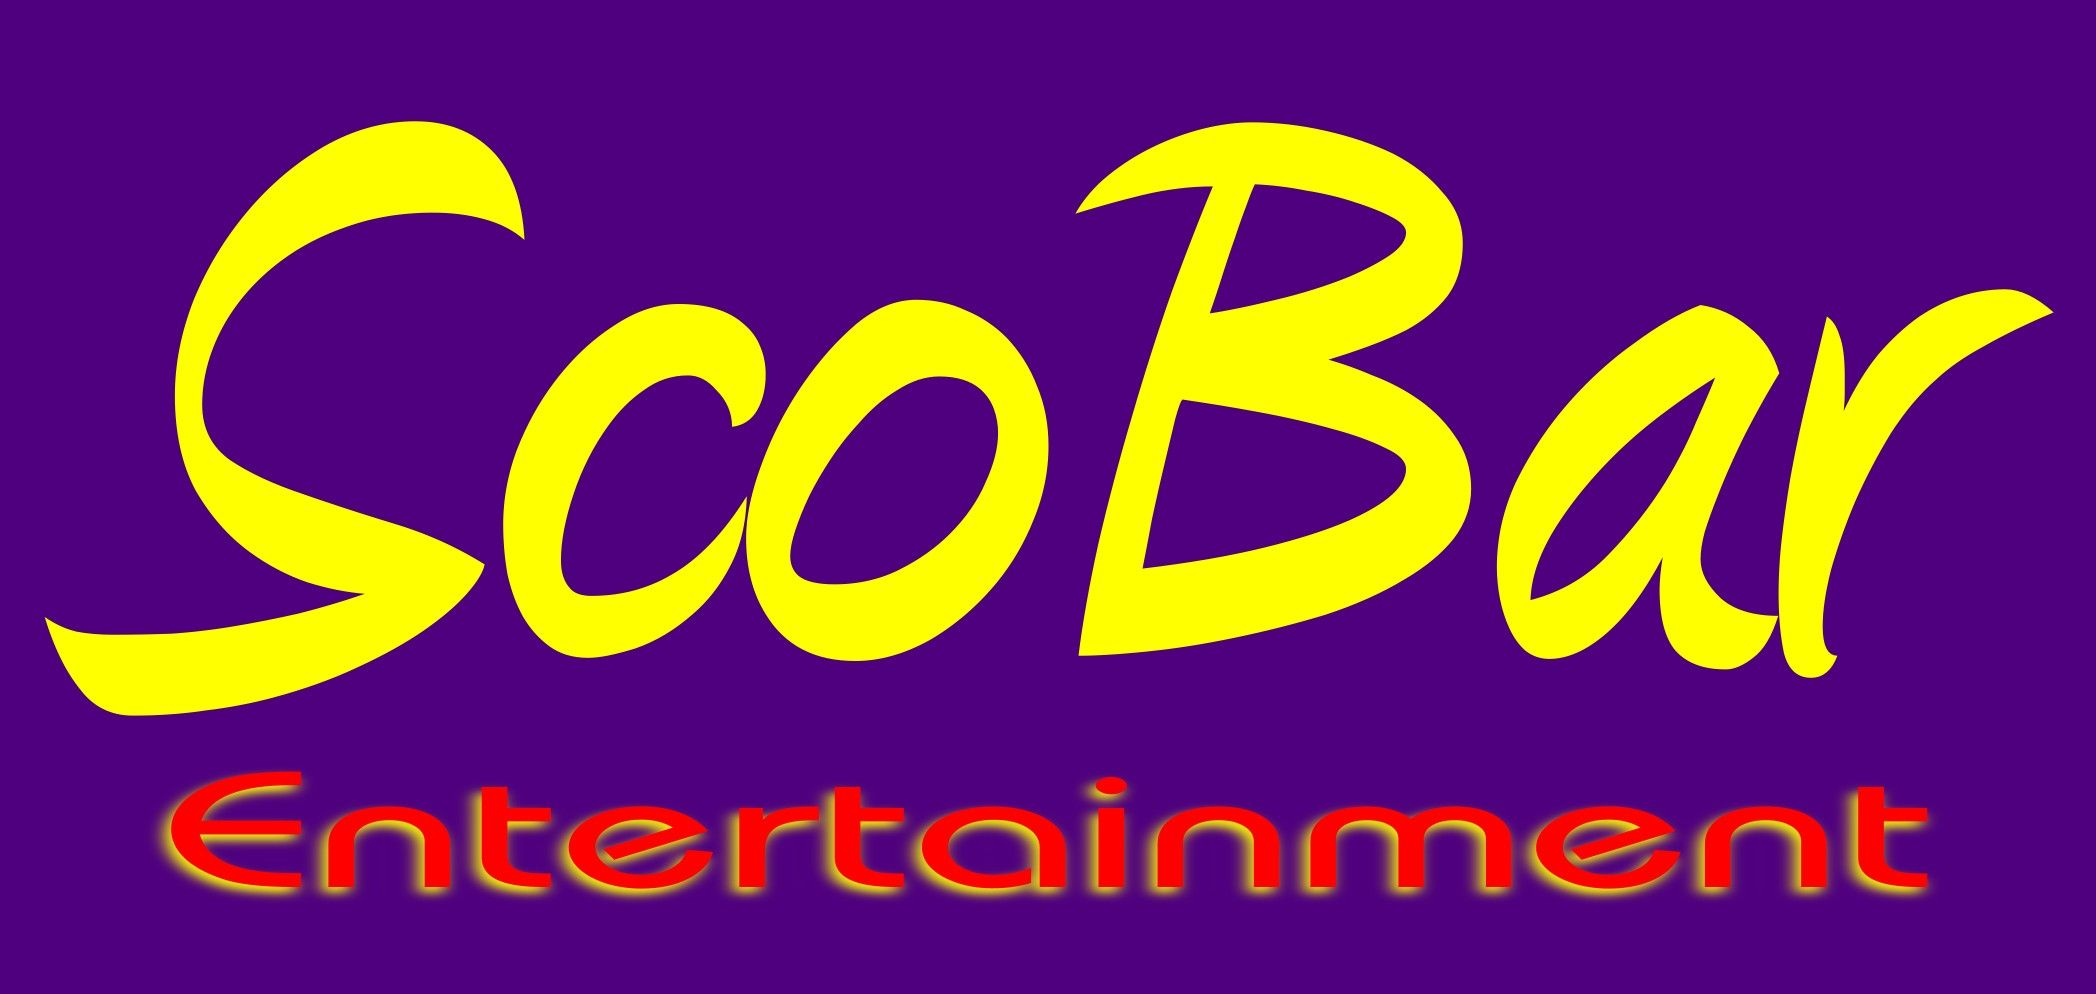 ScoBar Entertainment